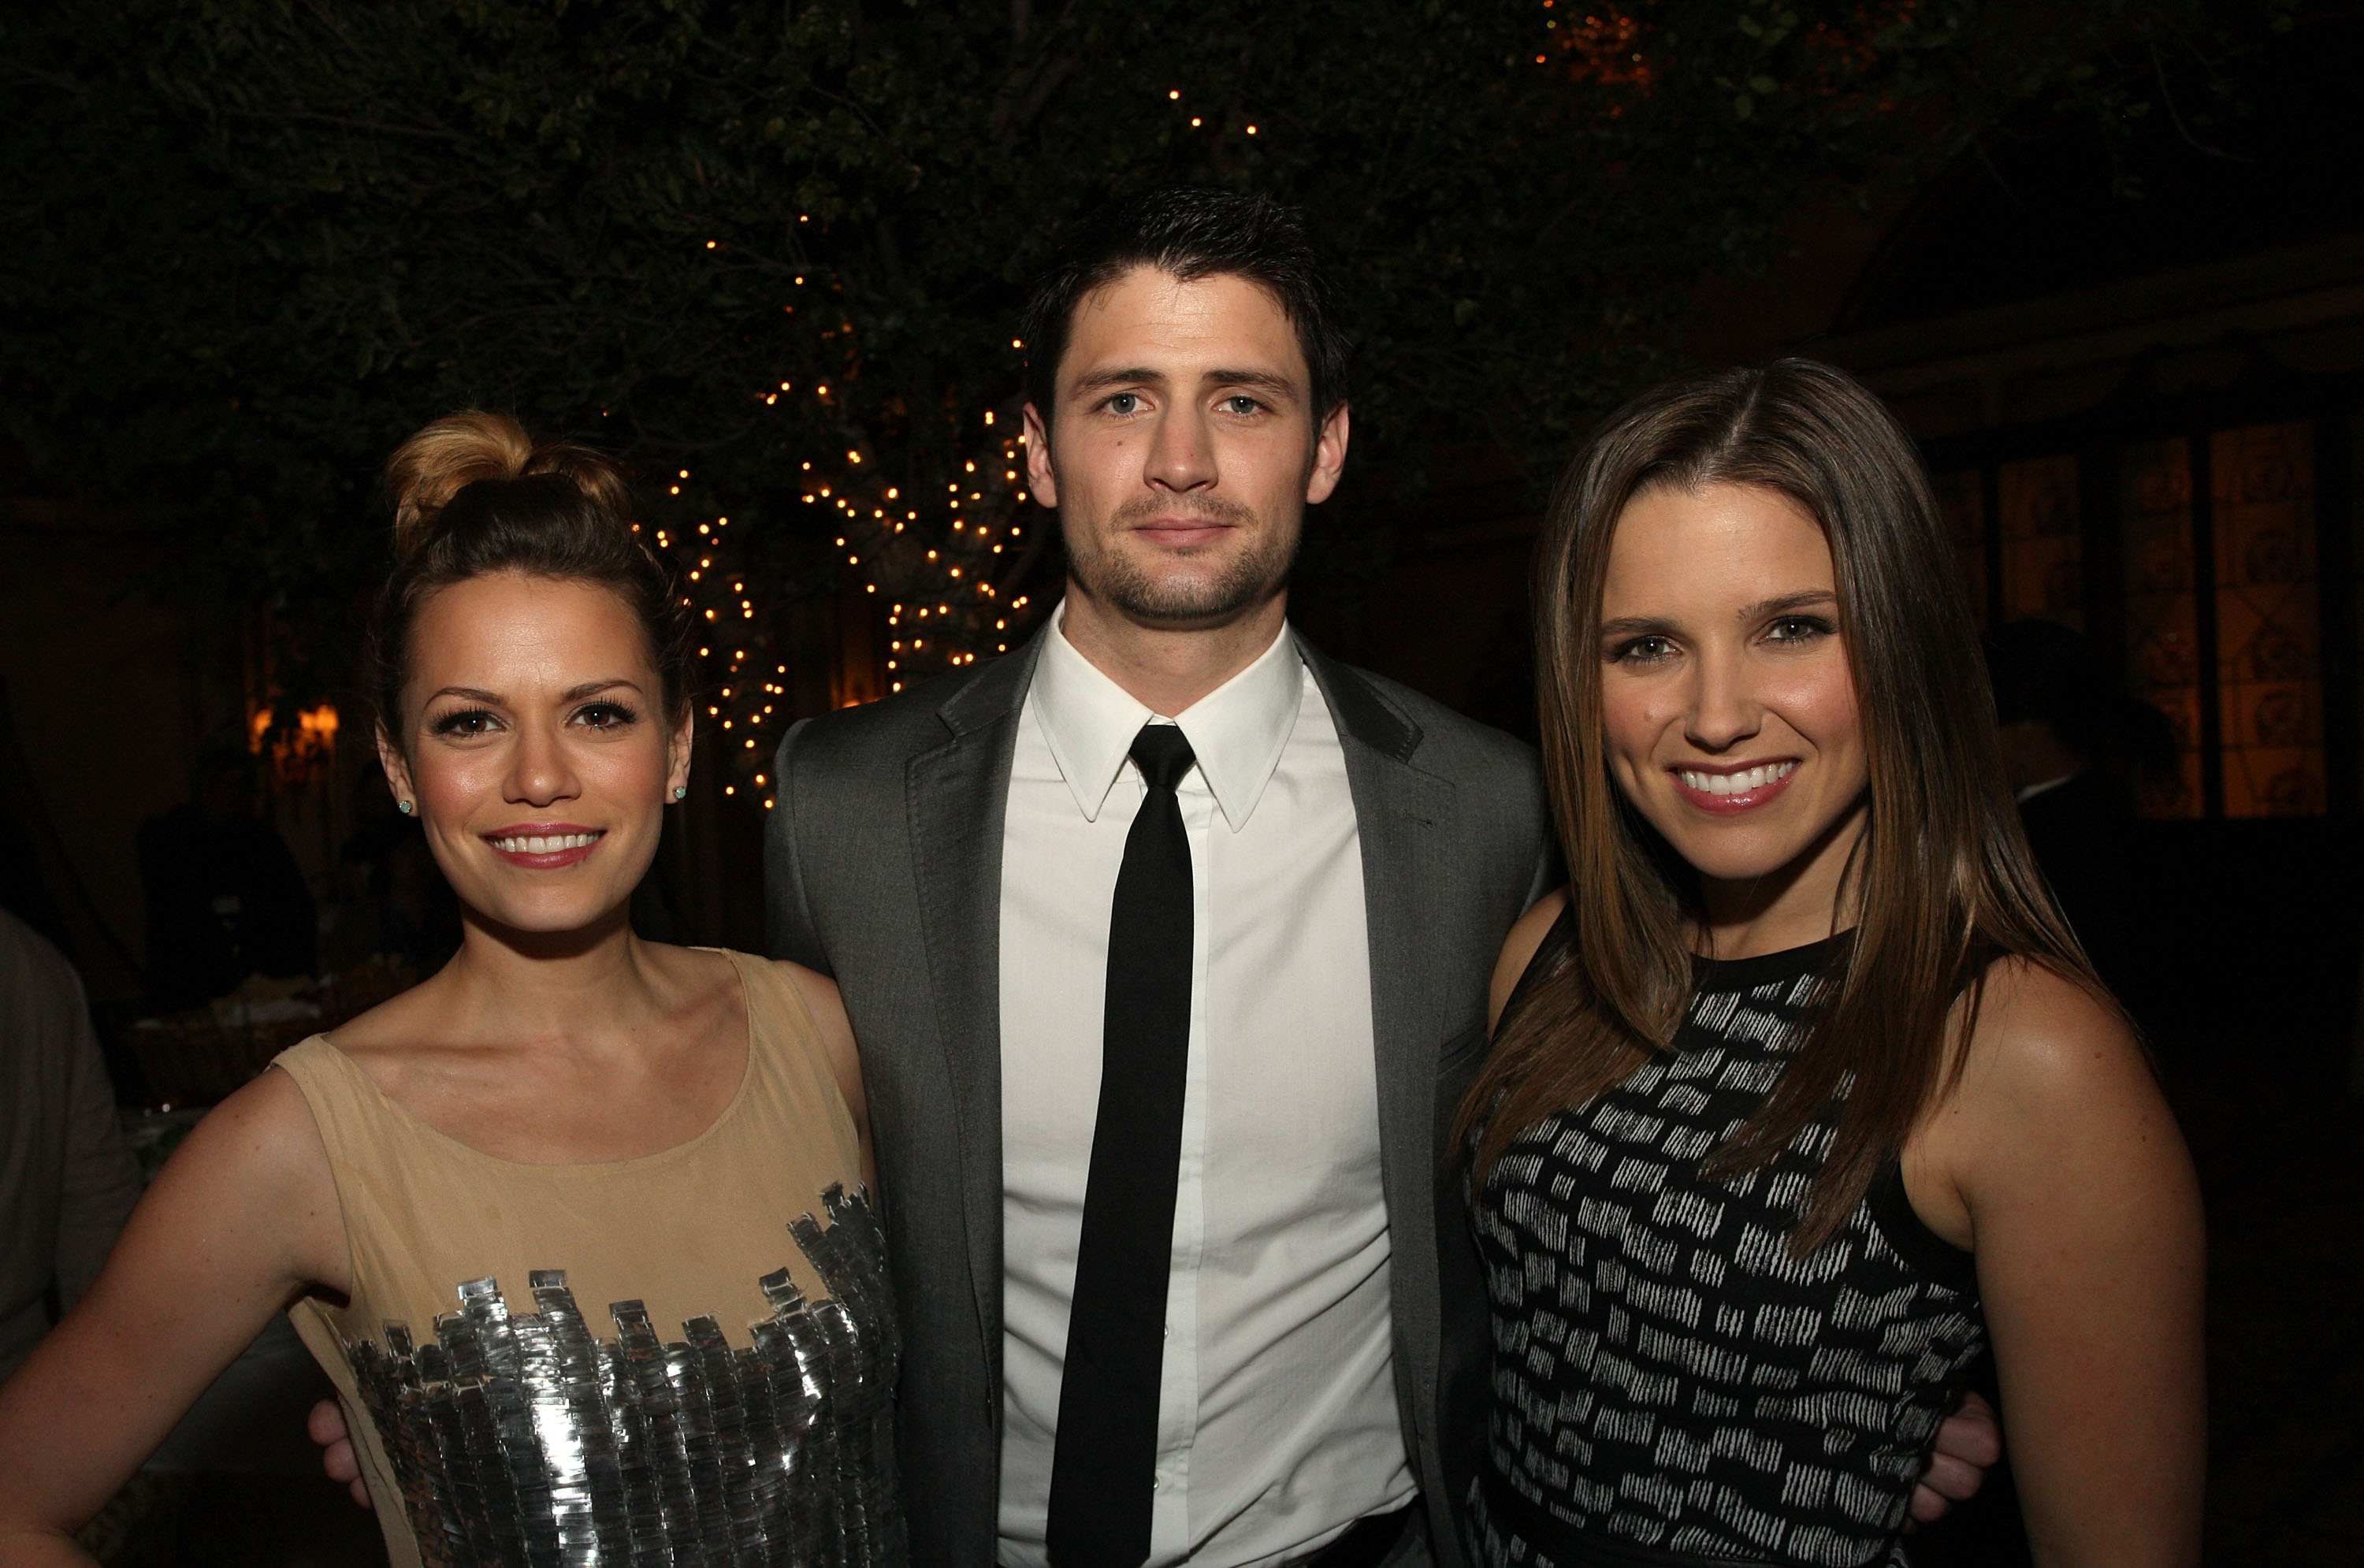 Friends reunited dating oth